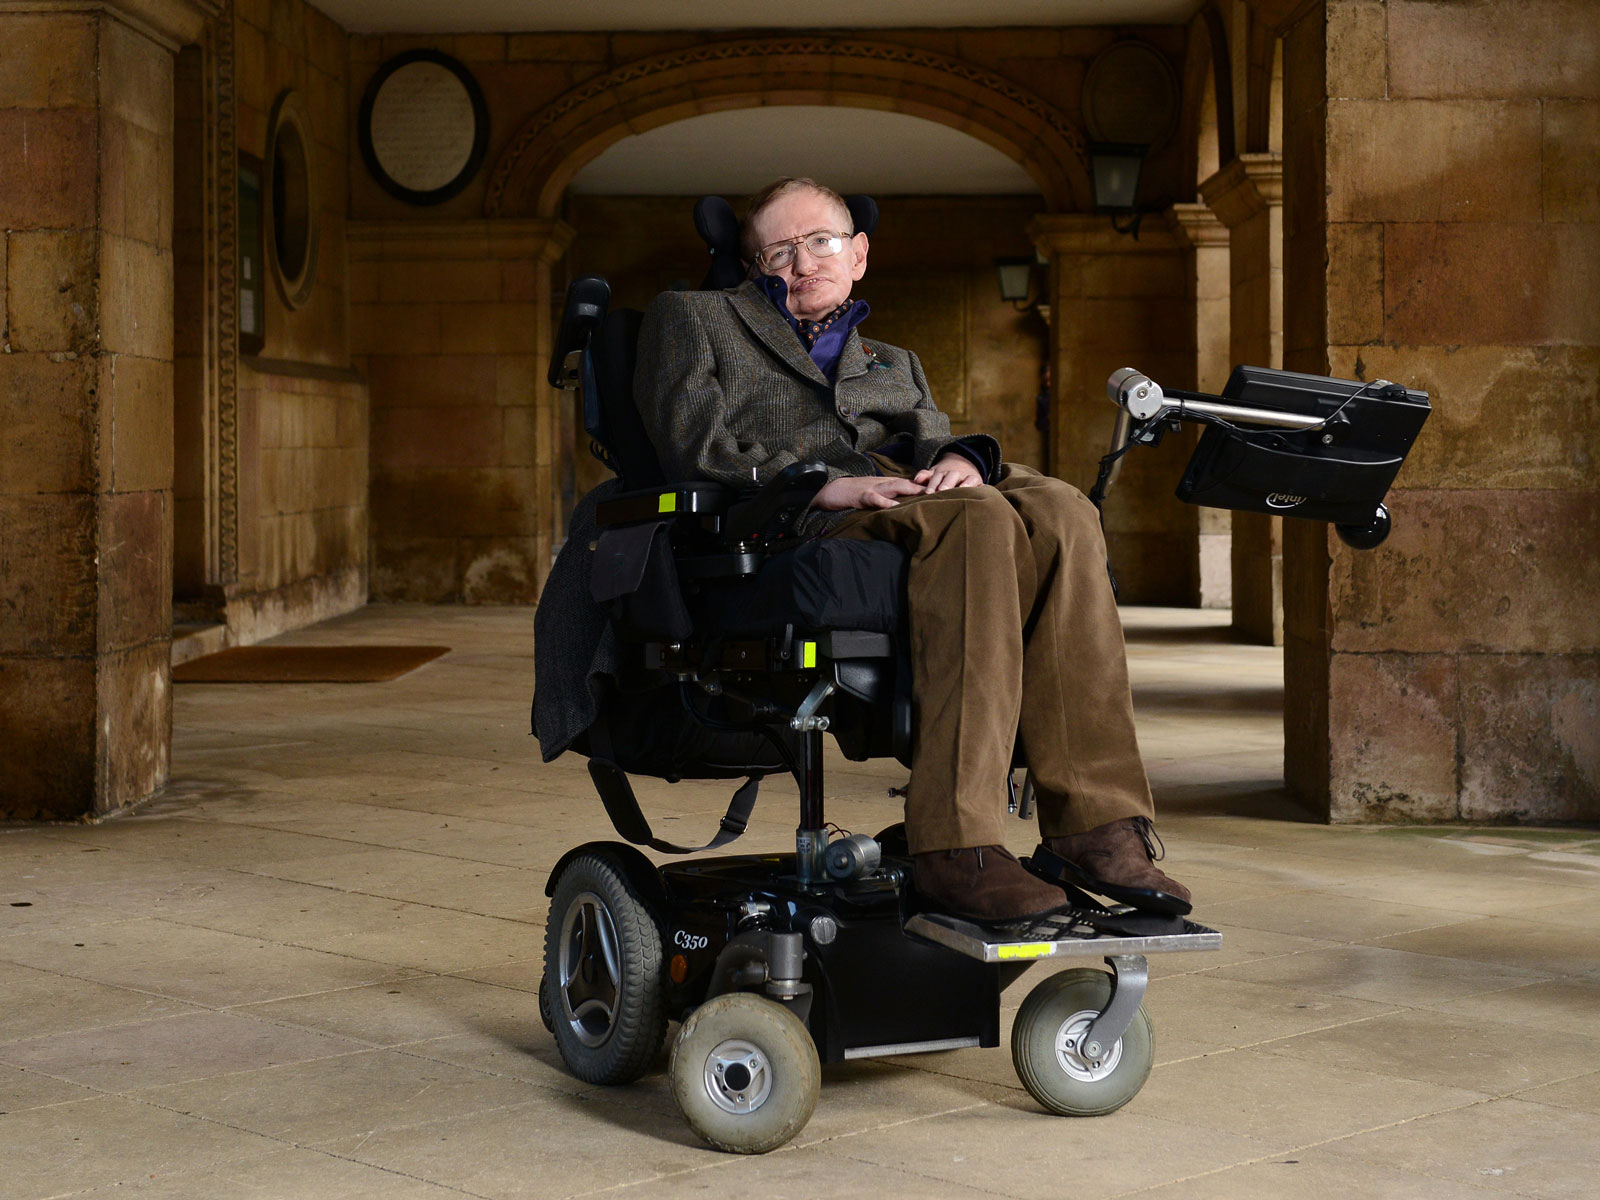 Stephen Hawking's Family Paid for Easter Dinner for 50 Homeless People